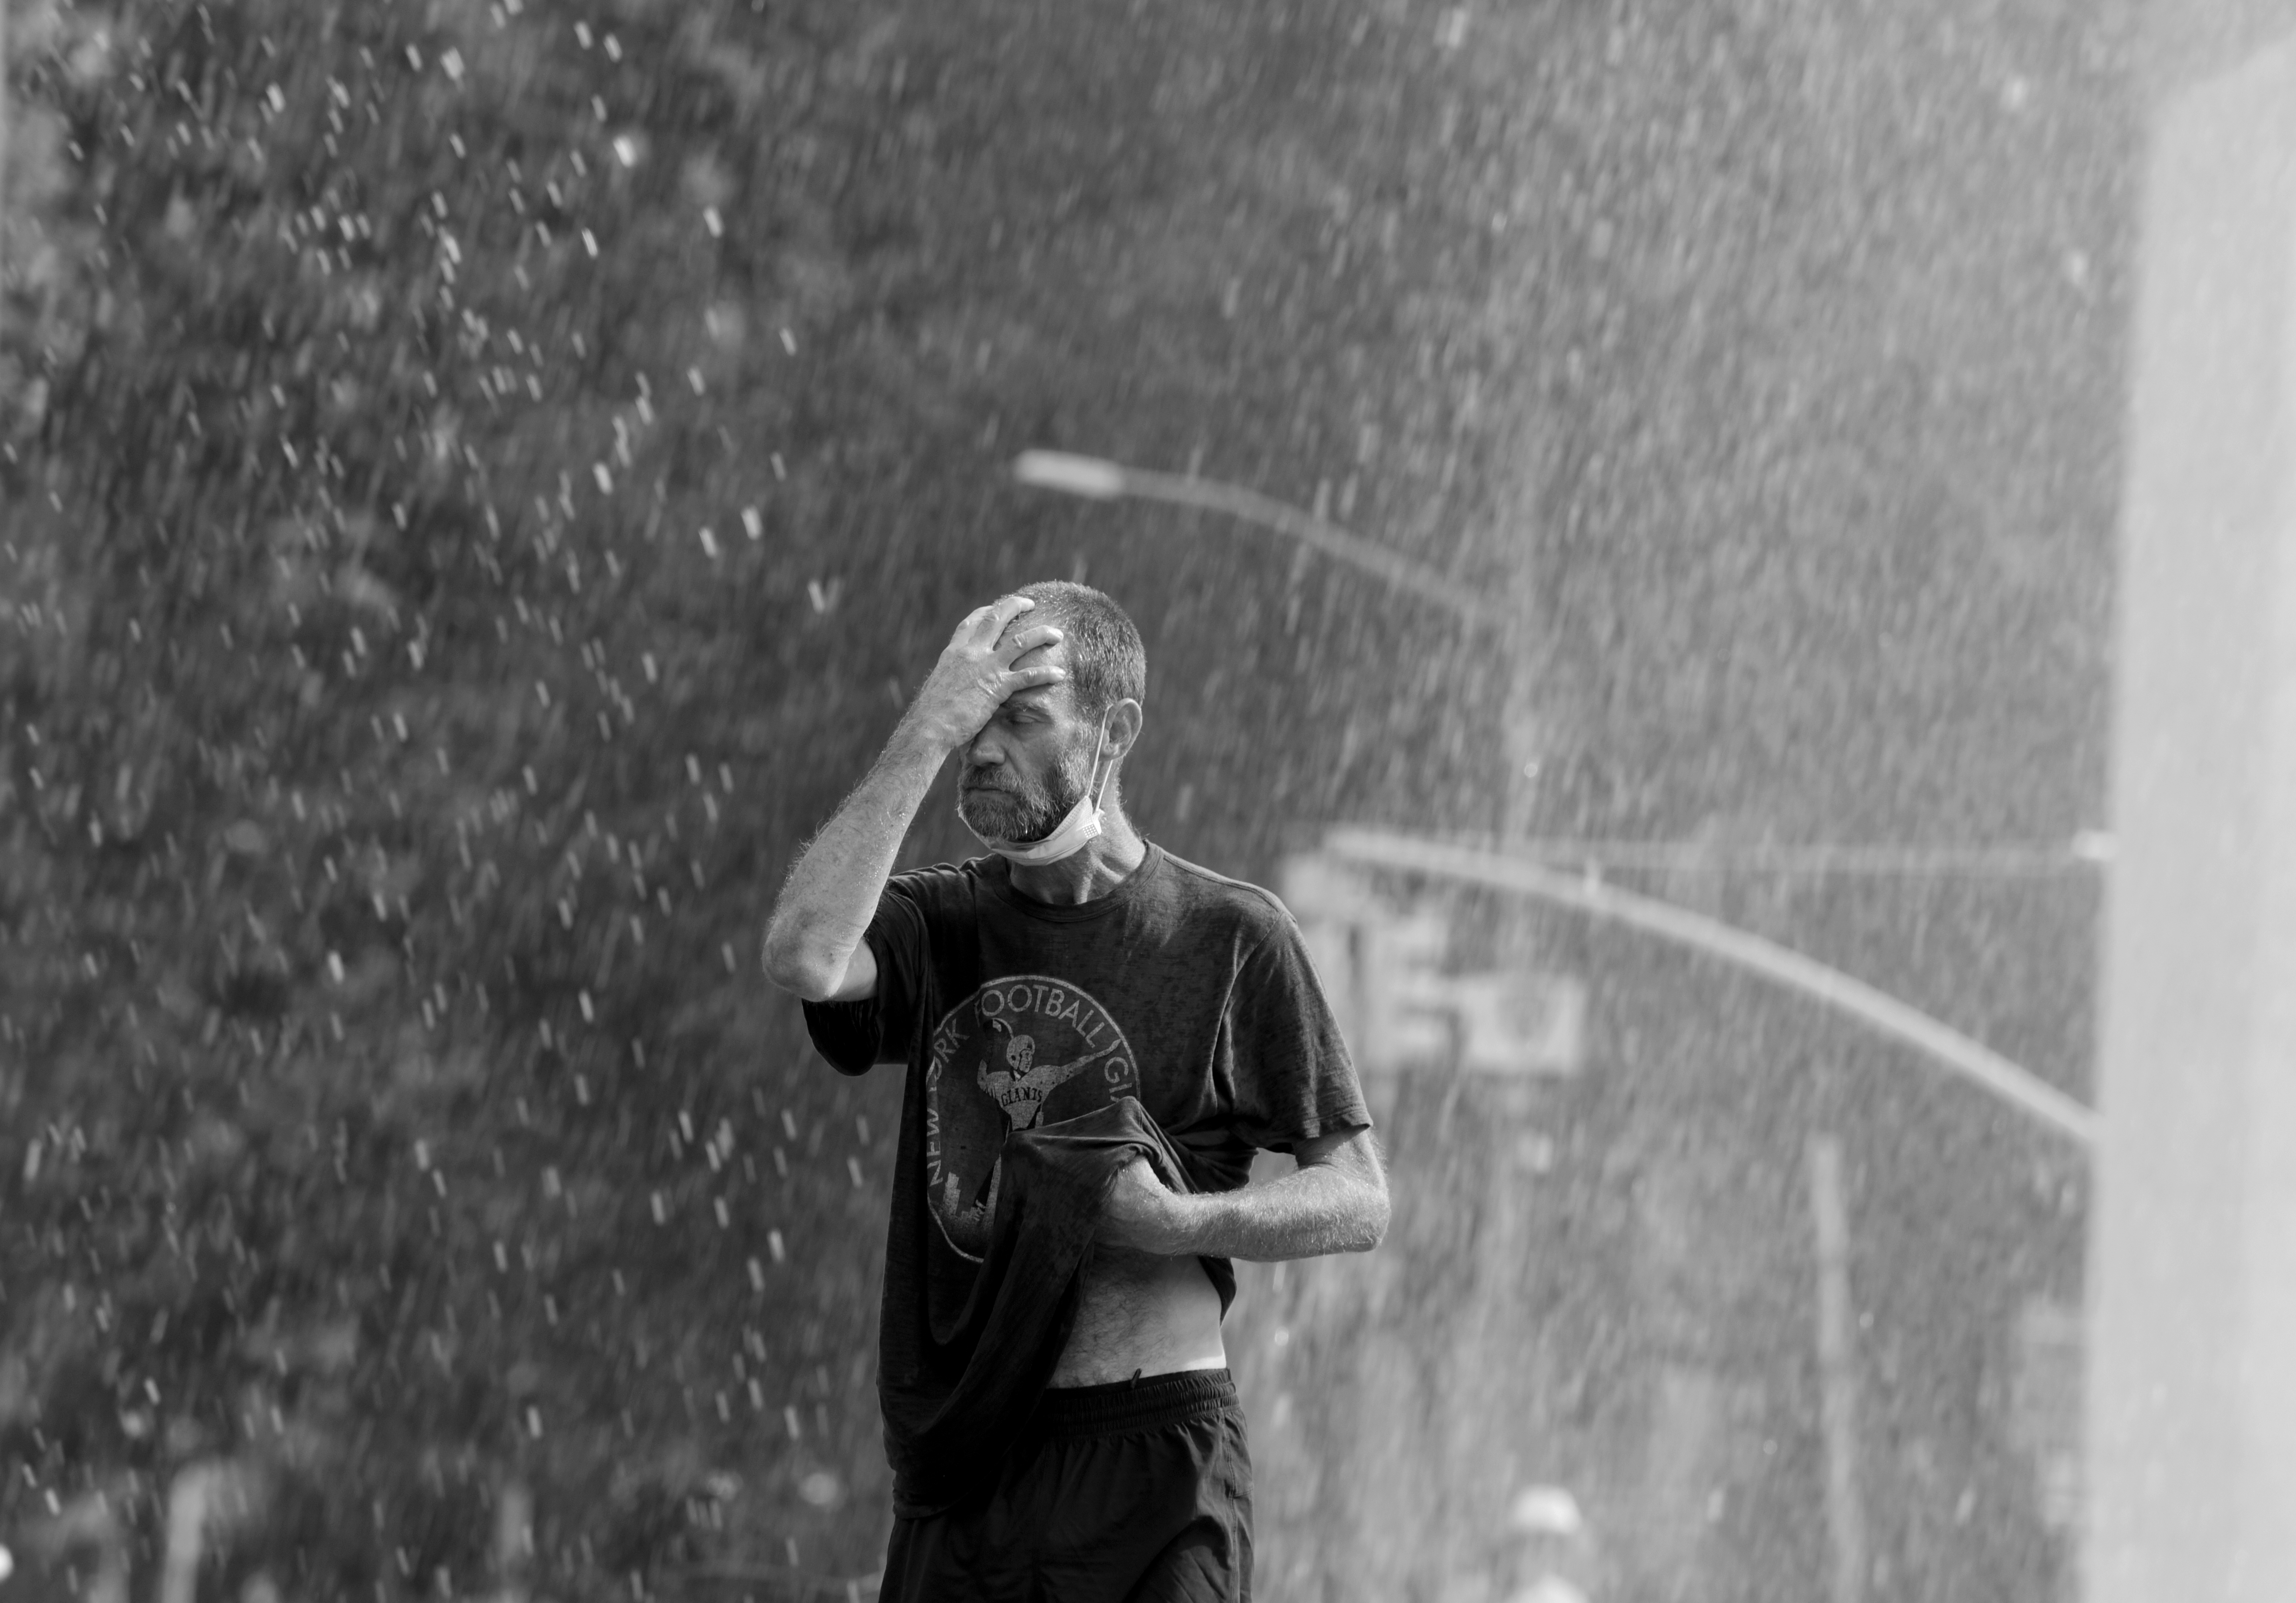 August WSP Man in fountain